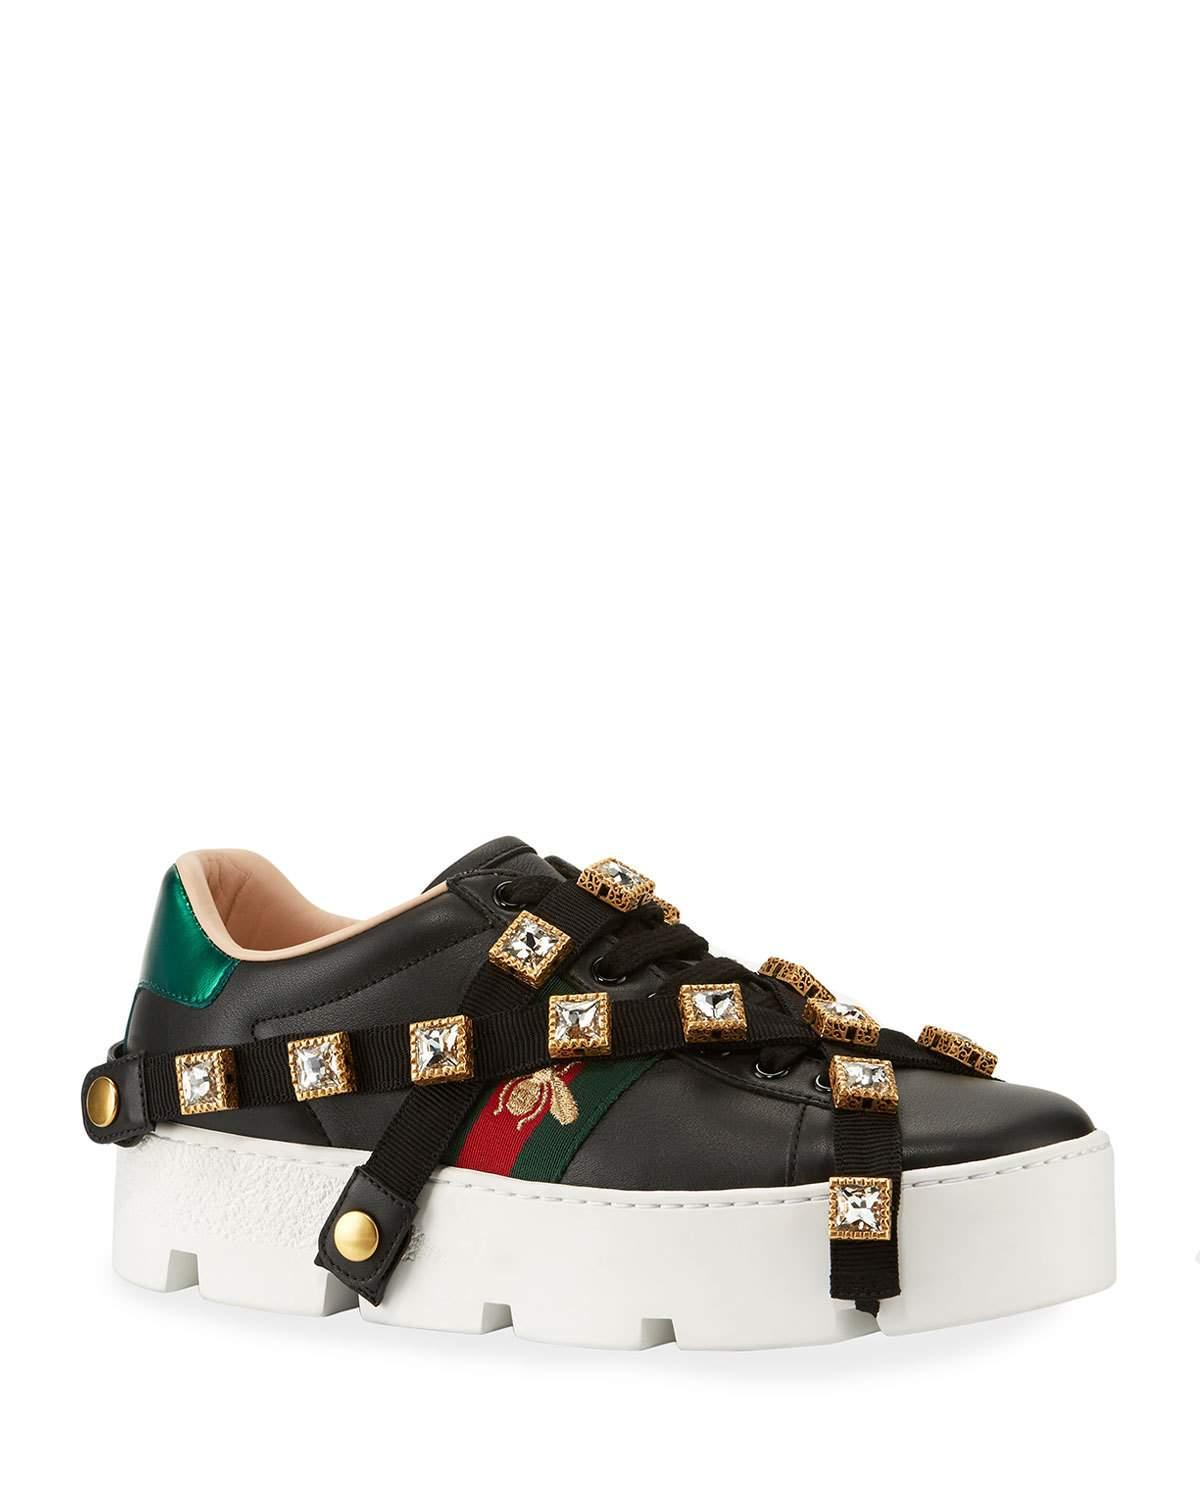 Gucci Ace Embroidered Platform Sneakers